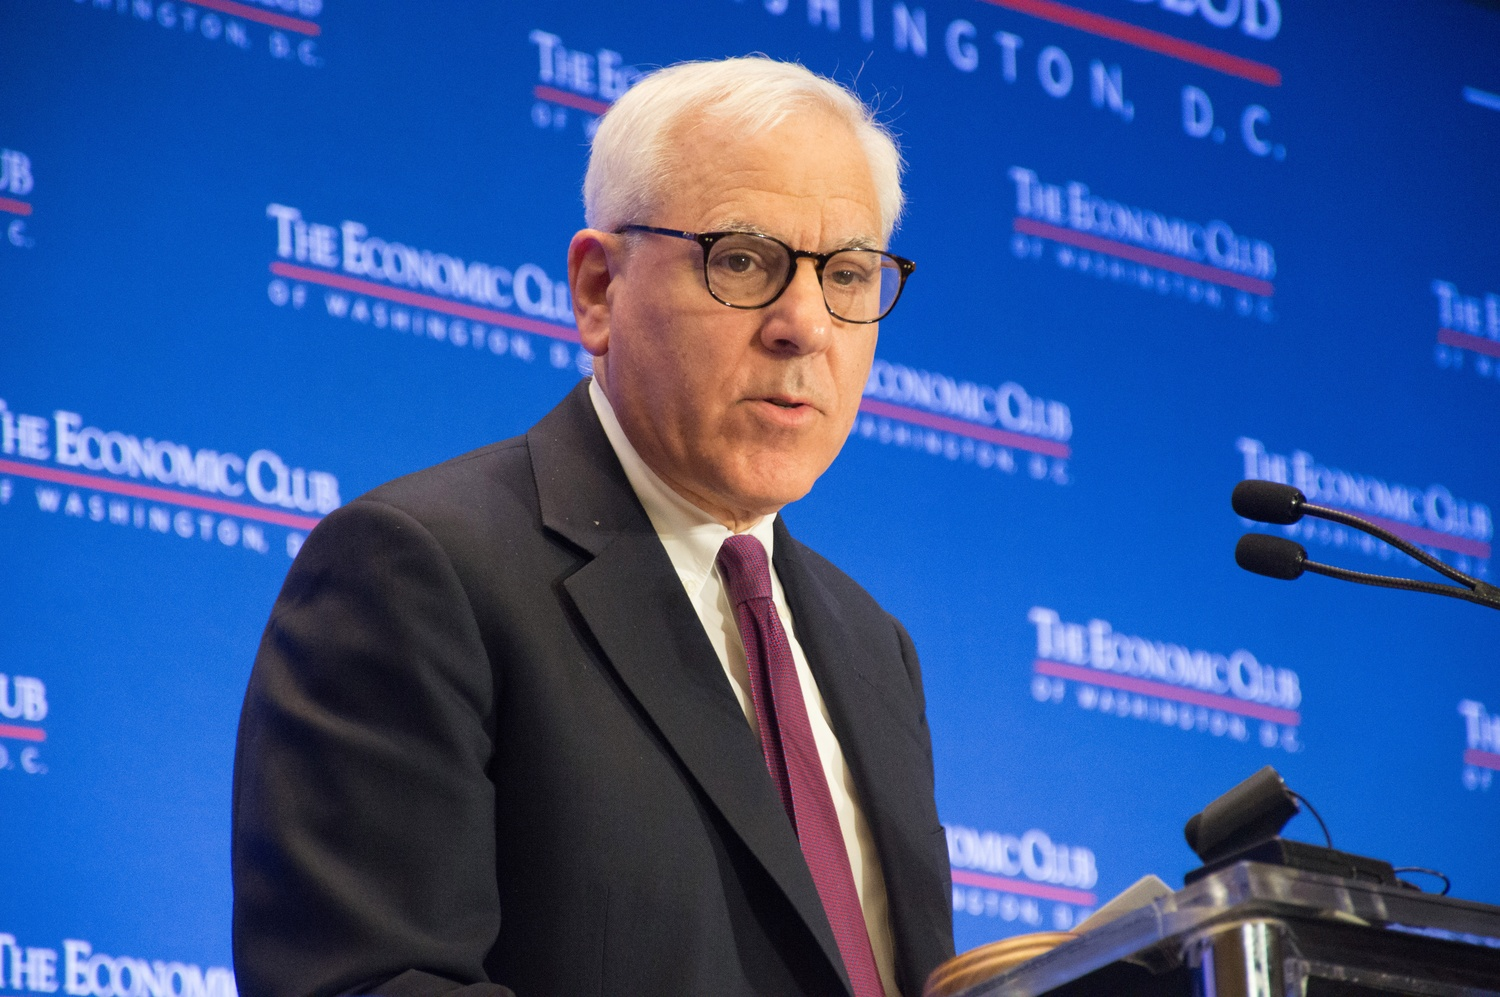 David Rubenstein, here speaking at the Economic Club in Washington, D.C. in 2017, joined the Harvard Corporation as its newest member in July.